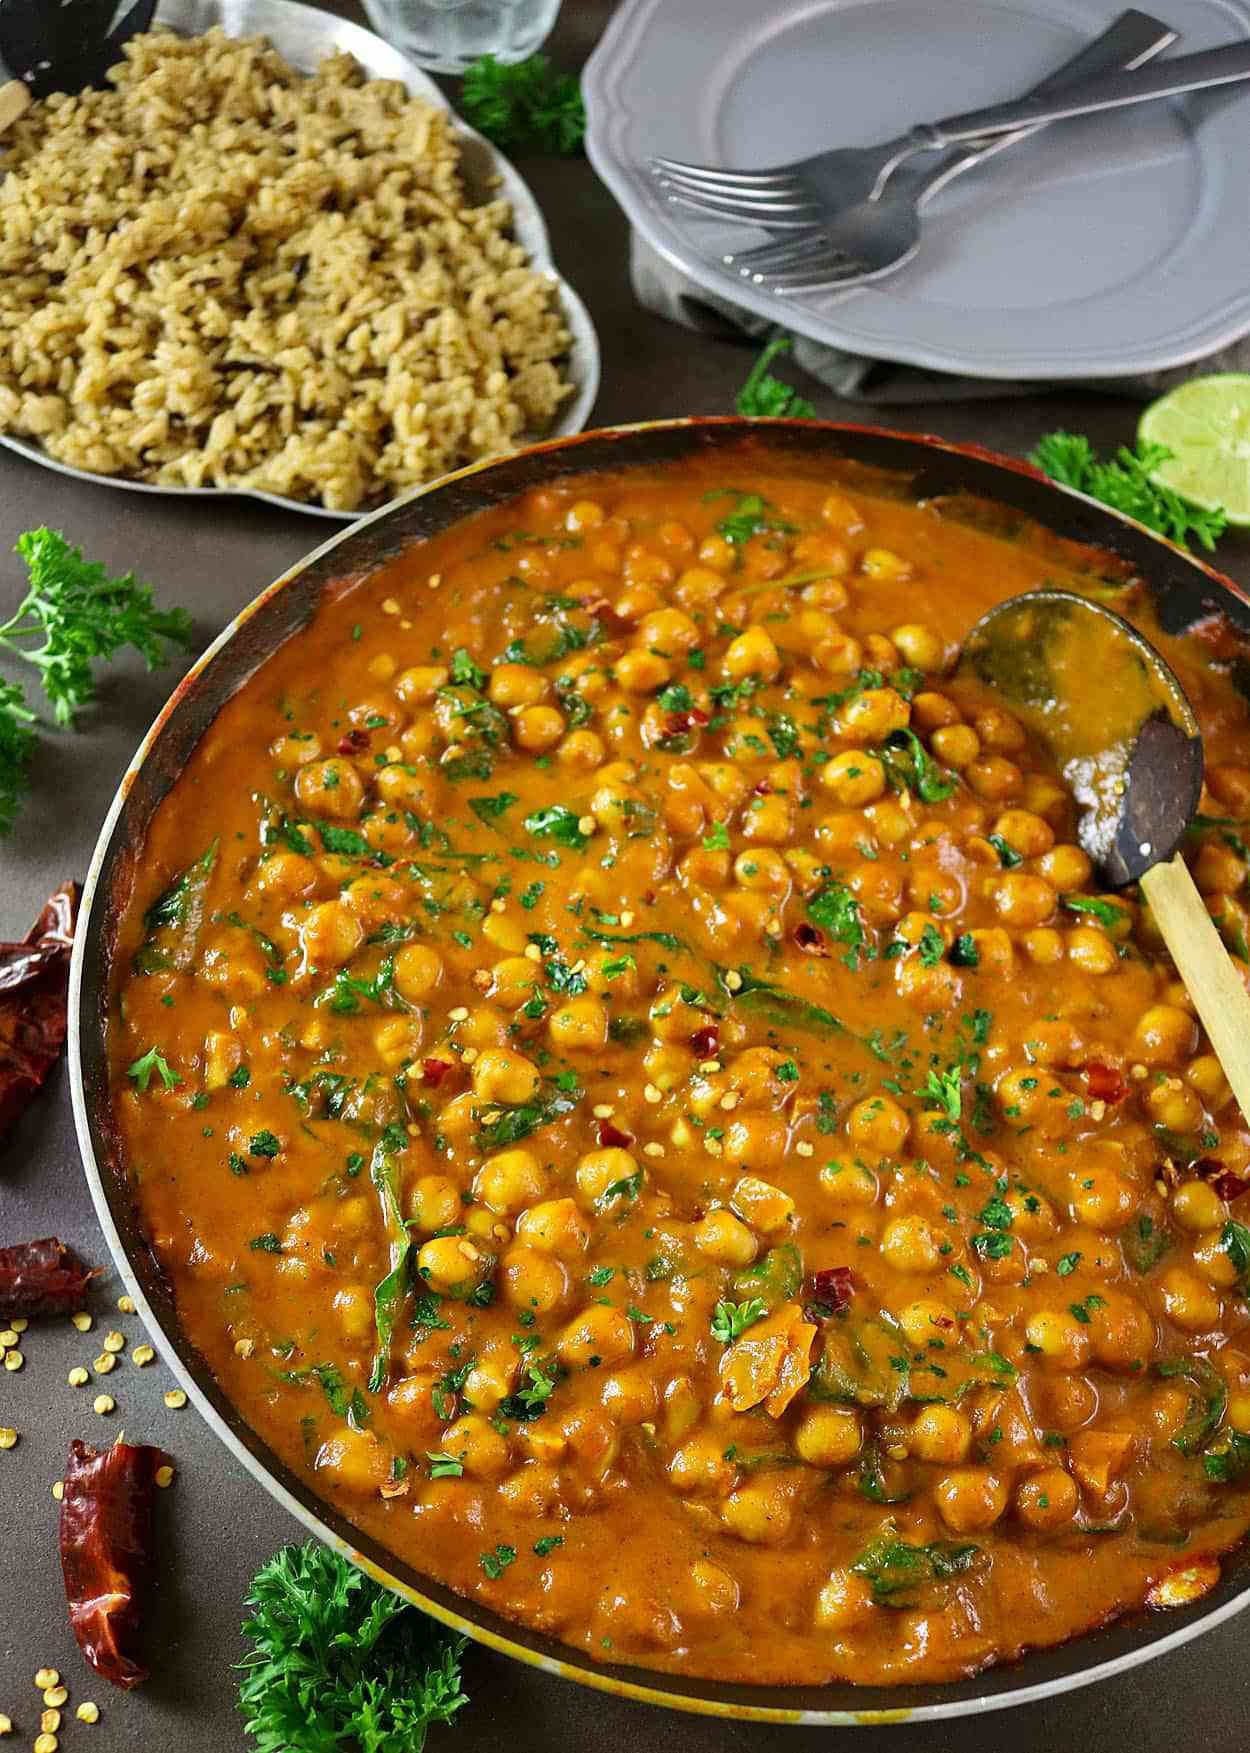 Easy Chickpea Spinach Curry Recipe Savory Spin Recipe Chickpea And Spinach Curry Curry Recipes Vegetarian Recipes